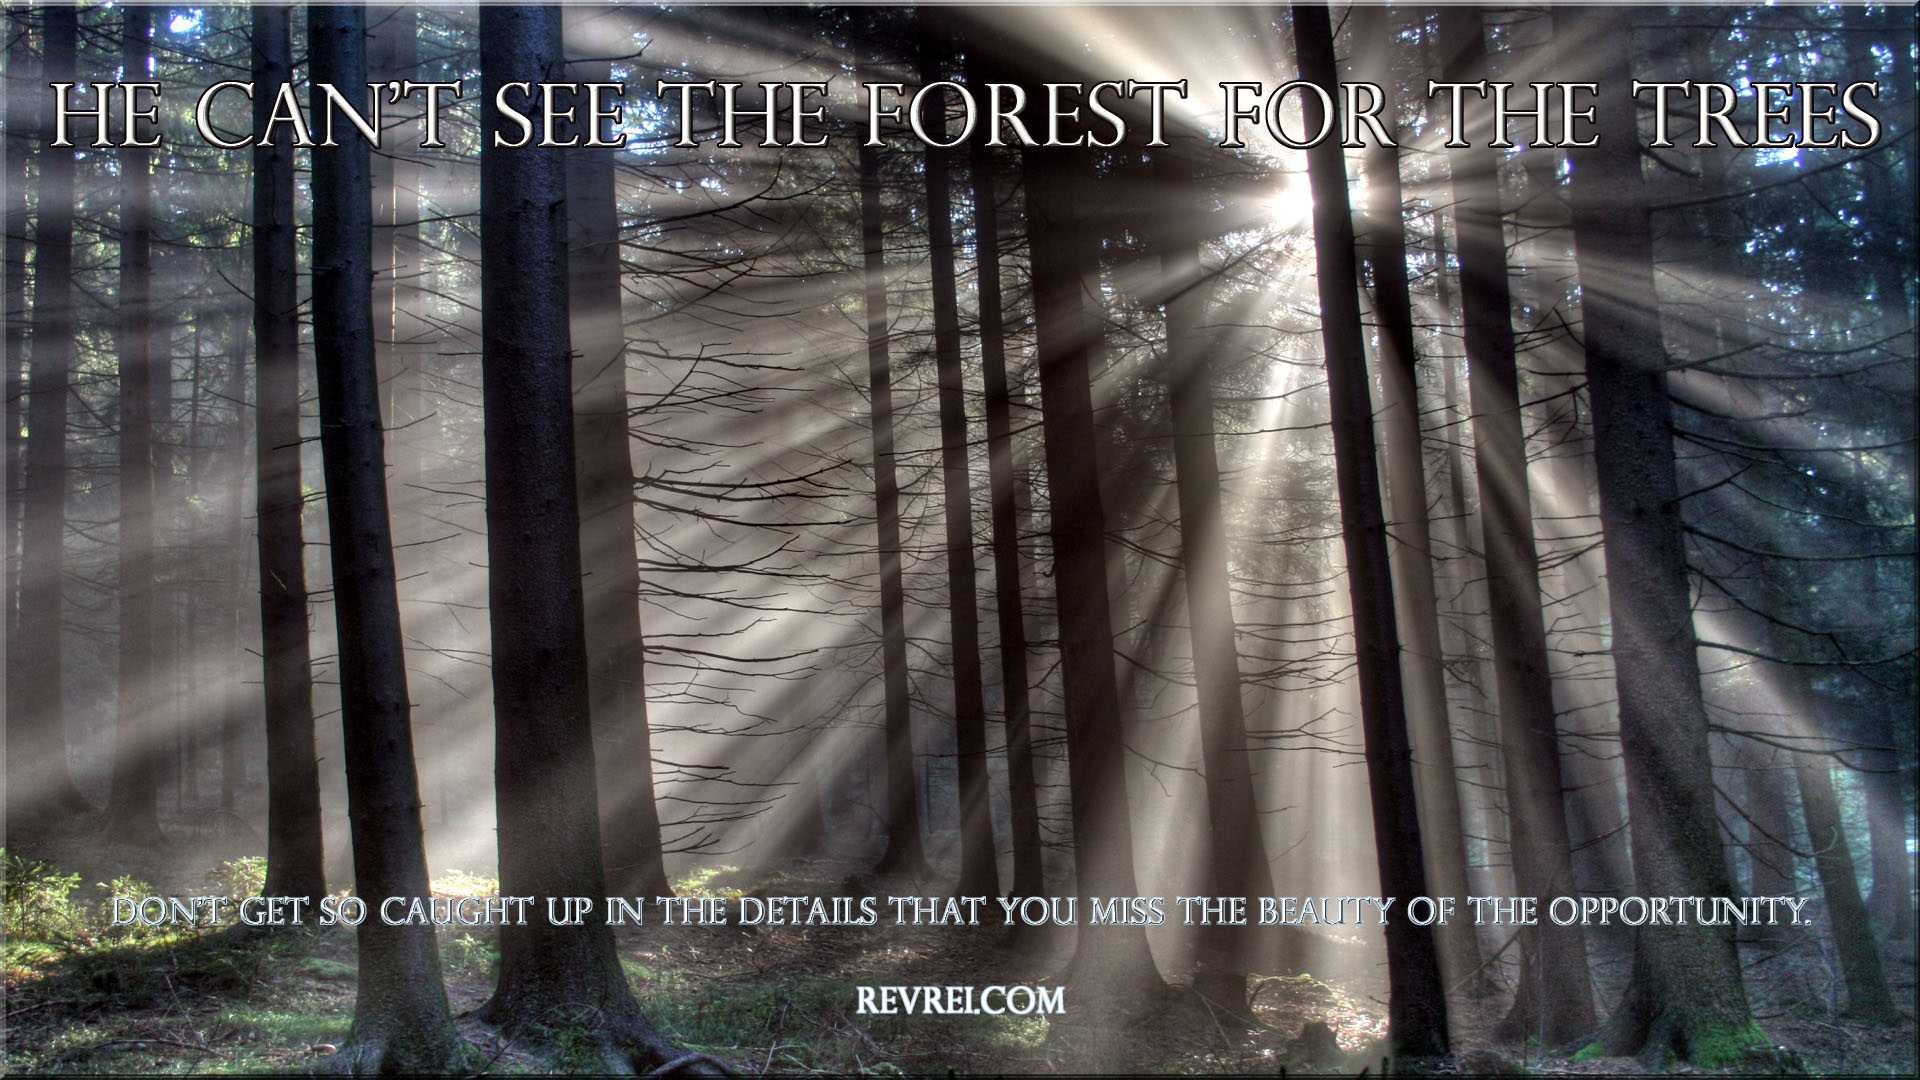 Fastest Saying You Can't See The Forest For The Trees